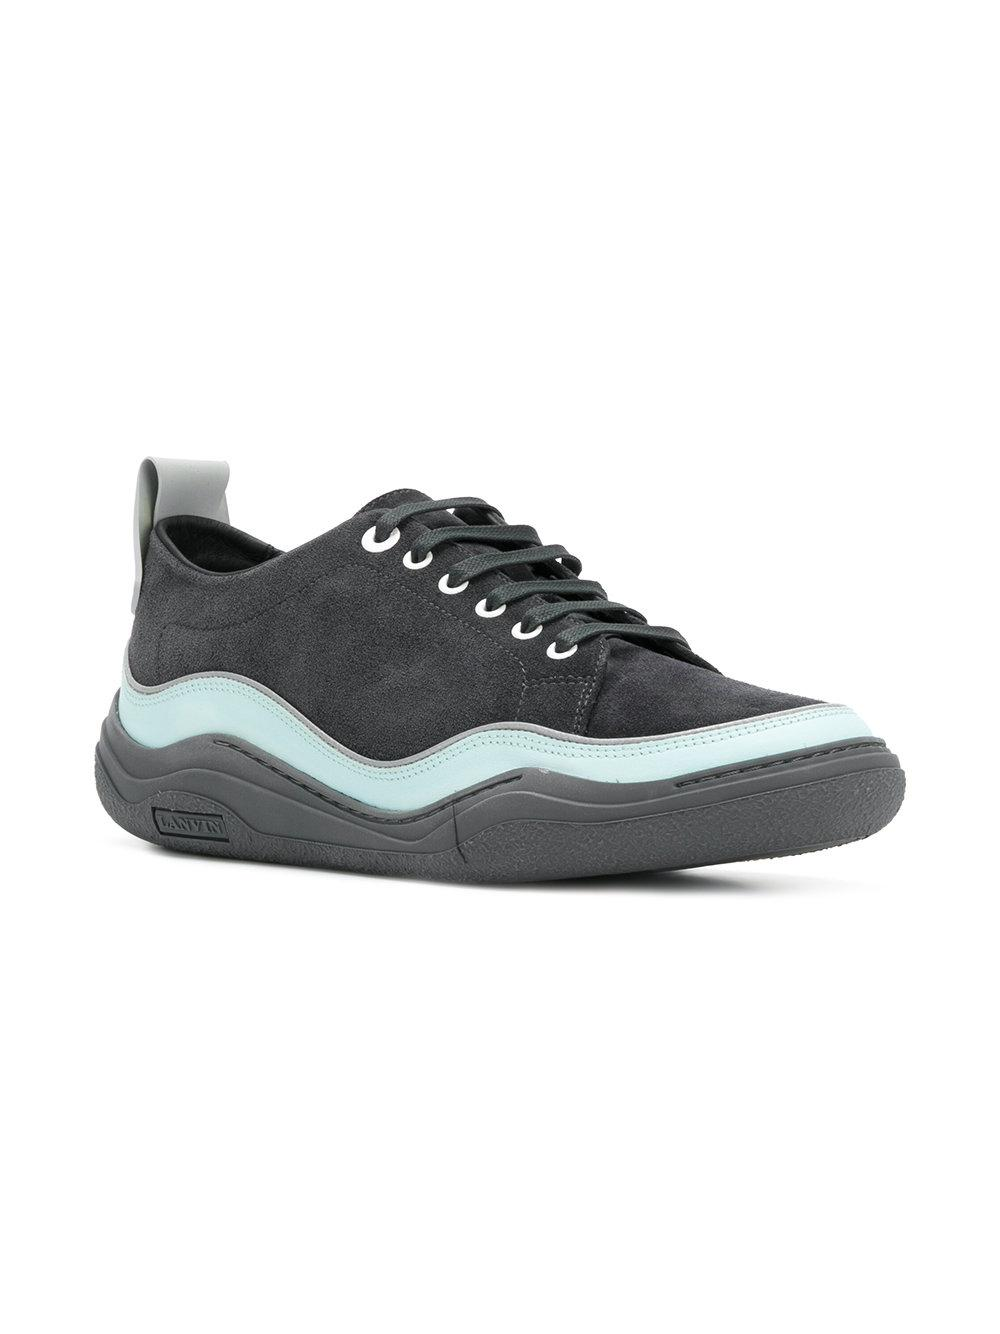 textured runner sneakers - Blue Lanvin LsUeFt